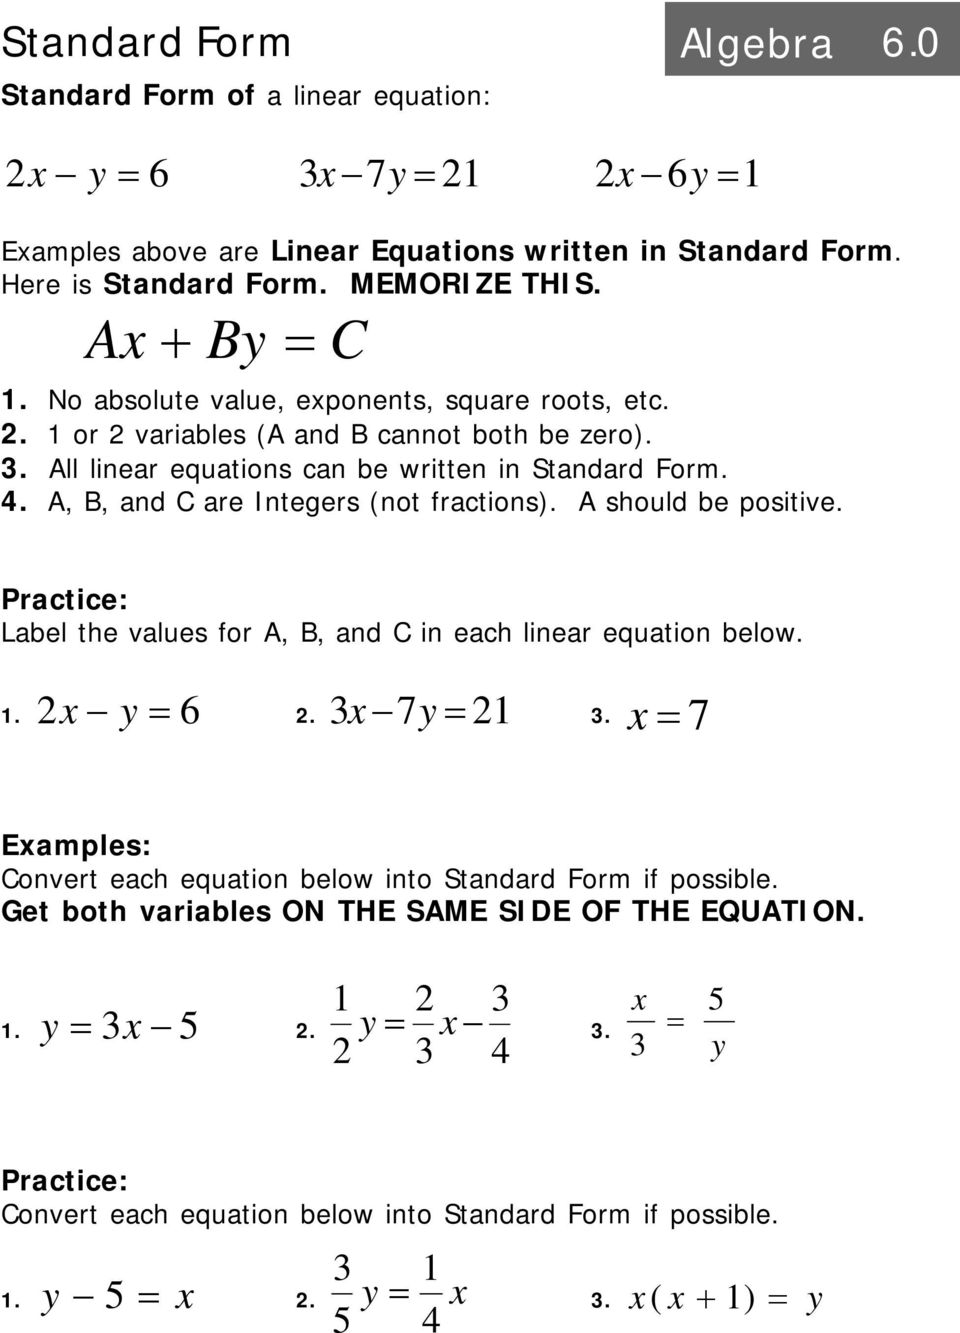 Intro To Linear Equations Algebra Pdf